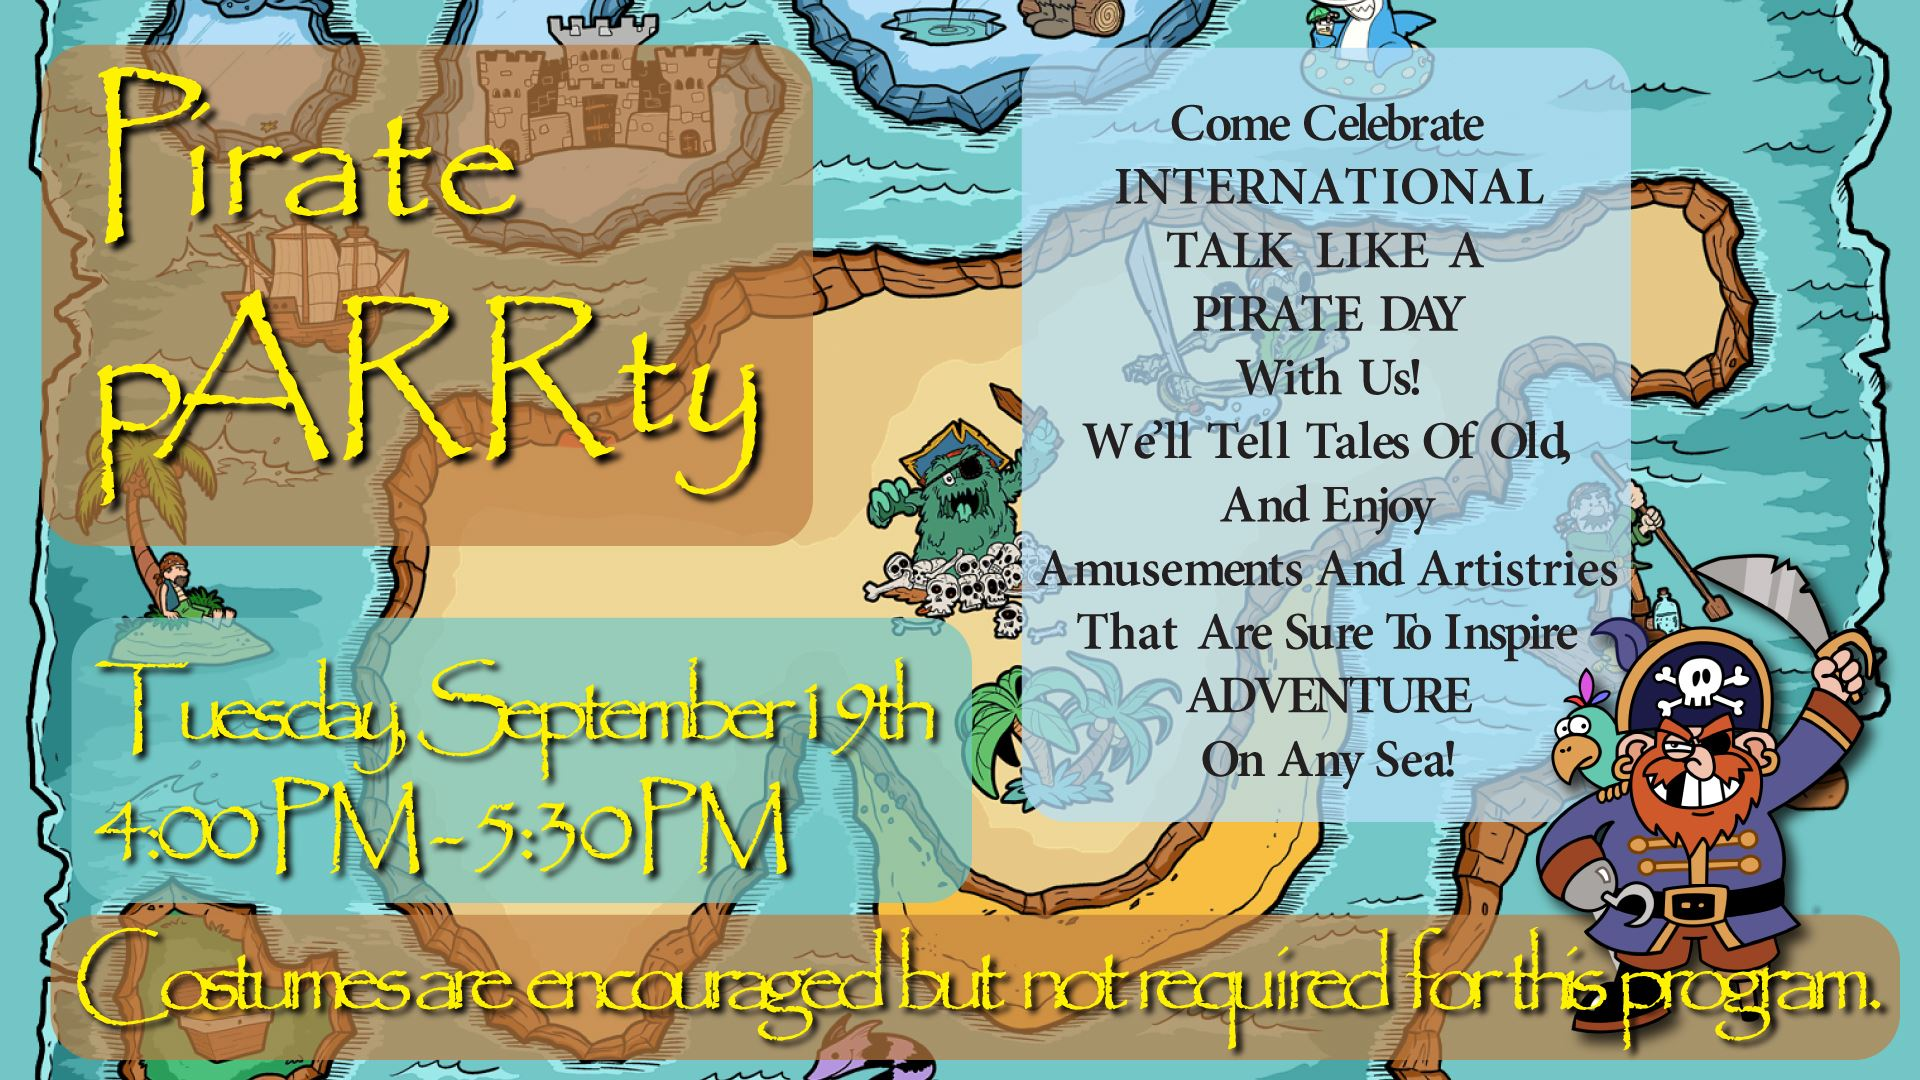 Pirate Parrrty Flyer2222222